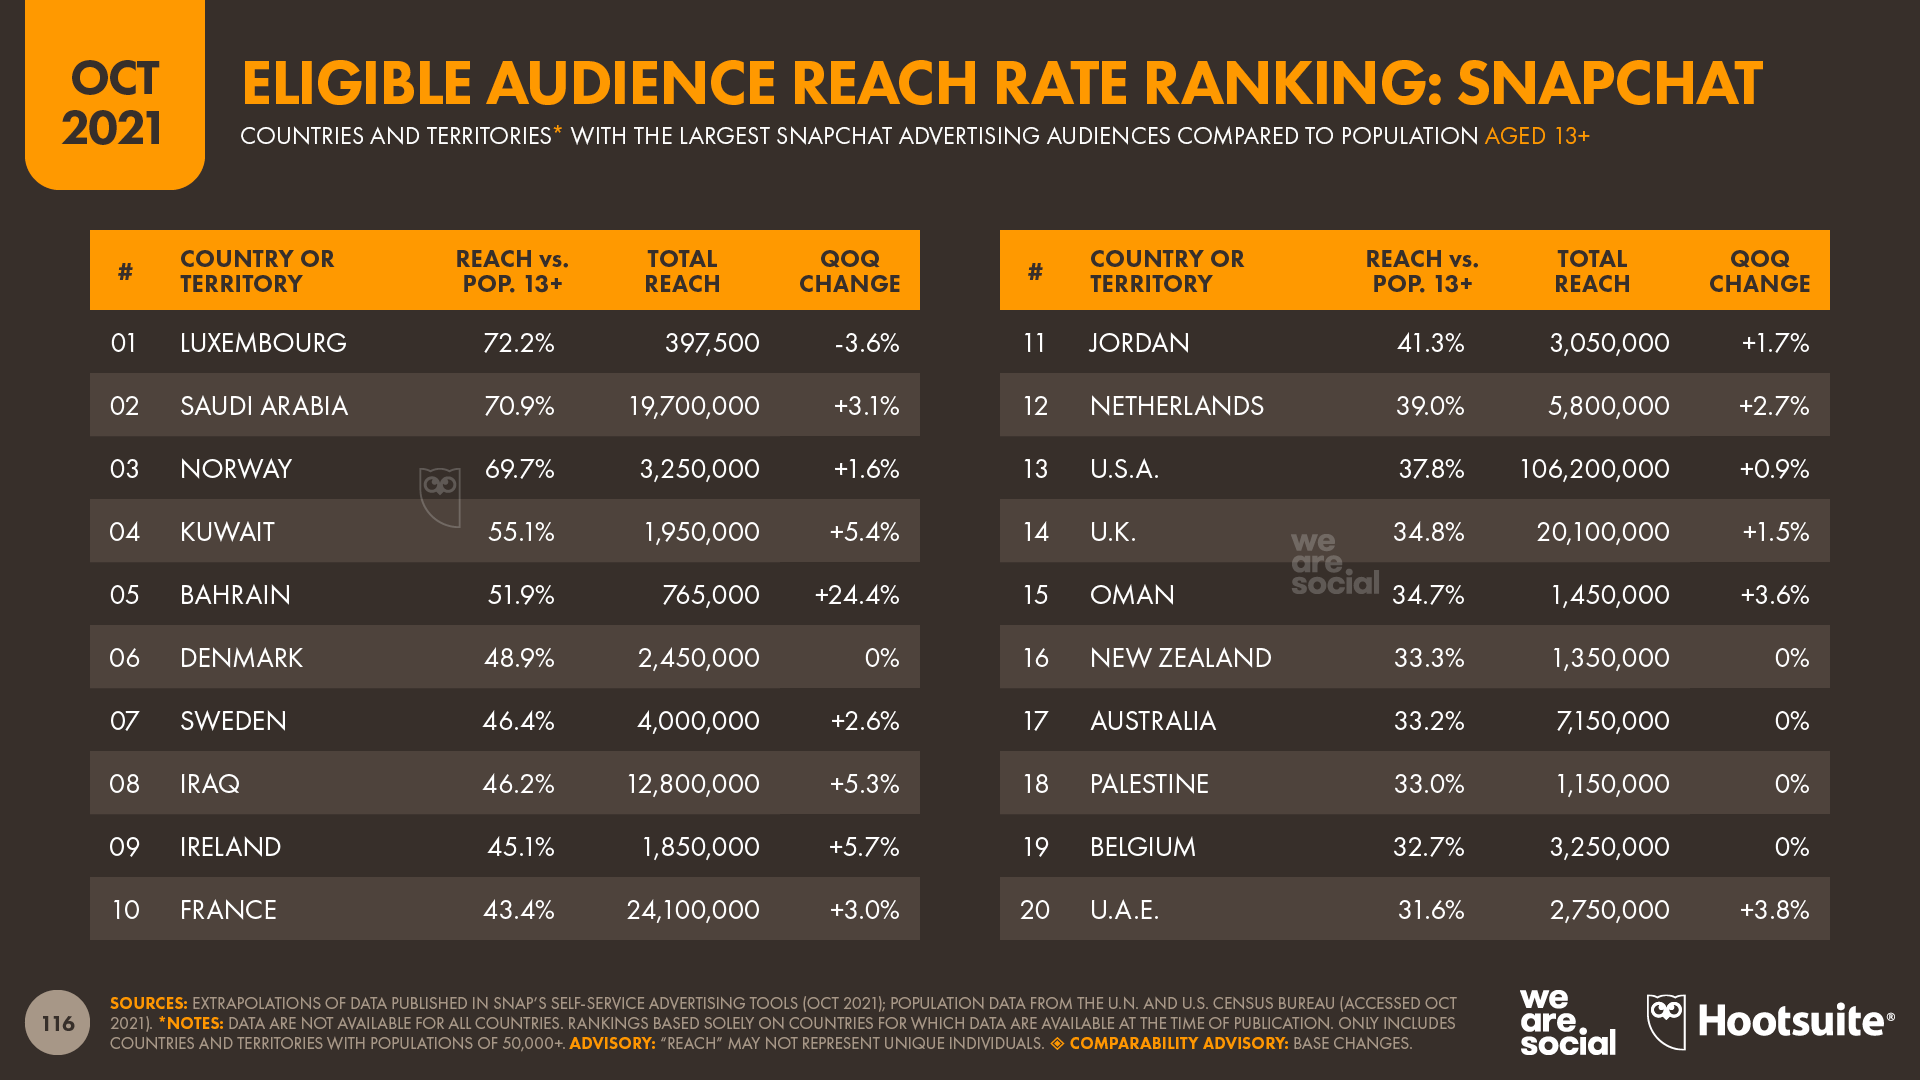 chart showing Eligible Audience Reach Rate Ranking for Snapchat